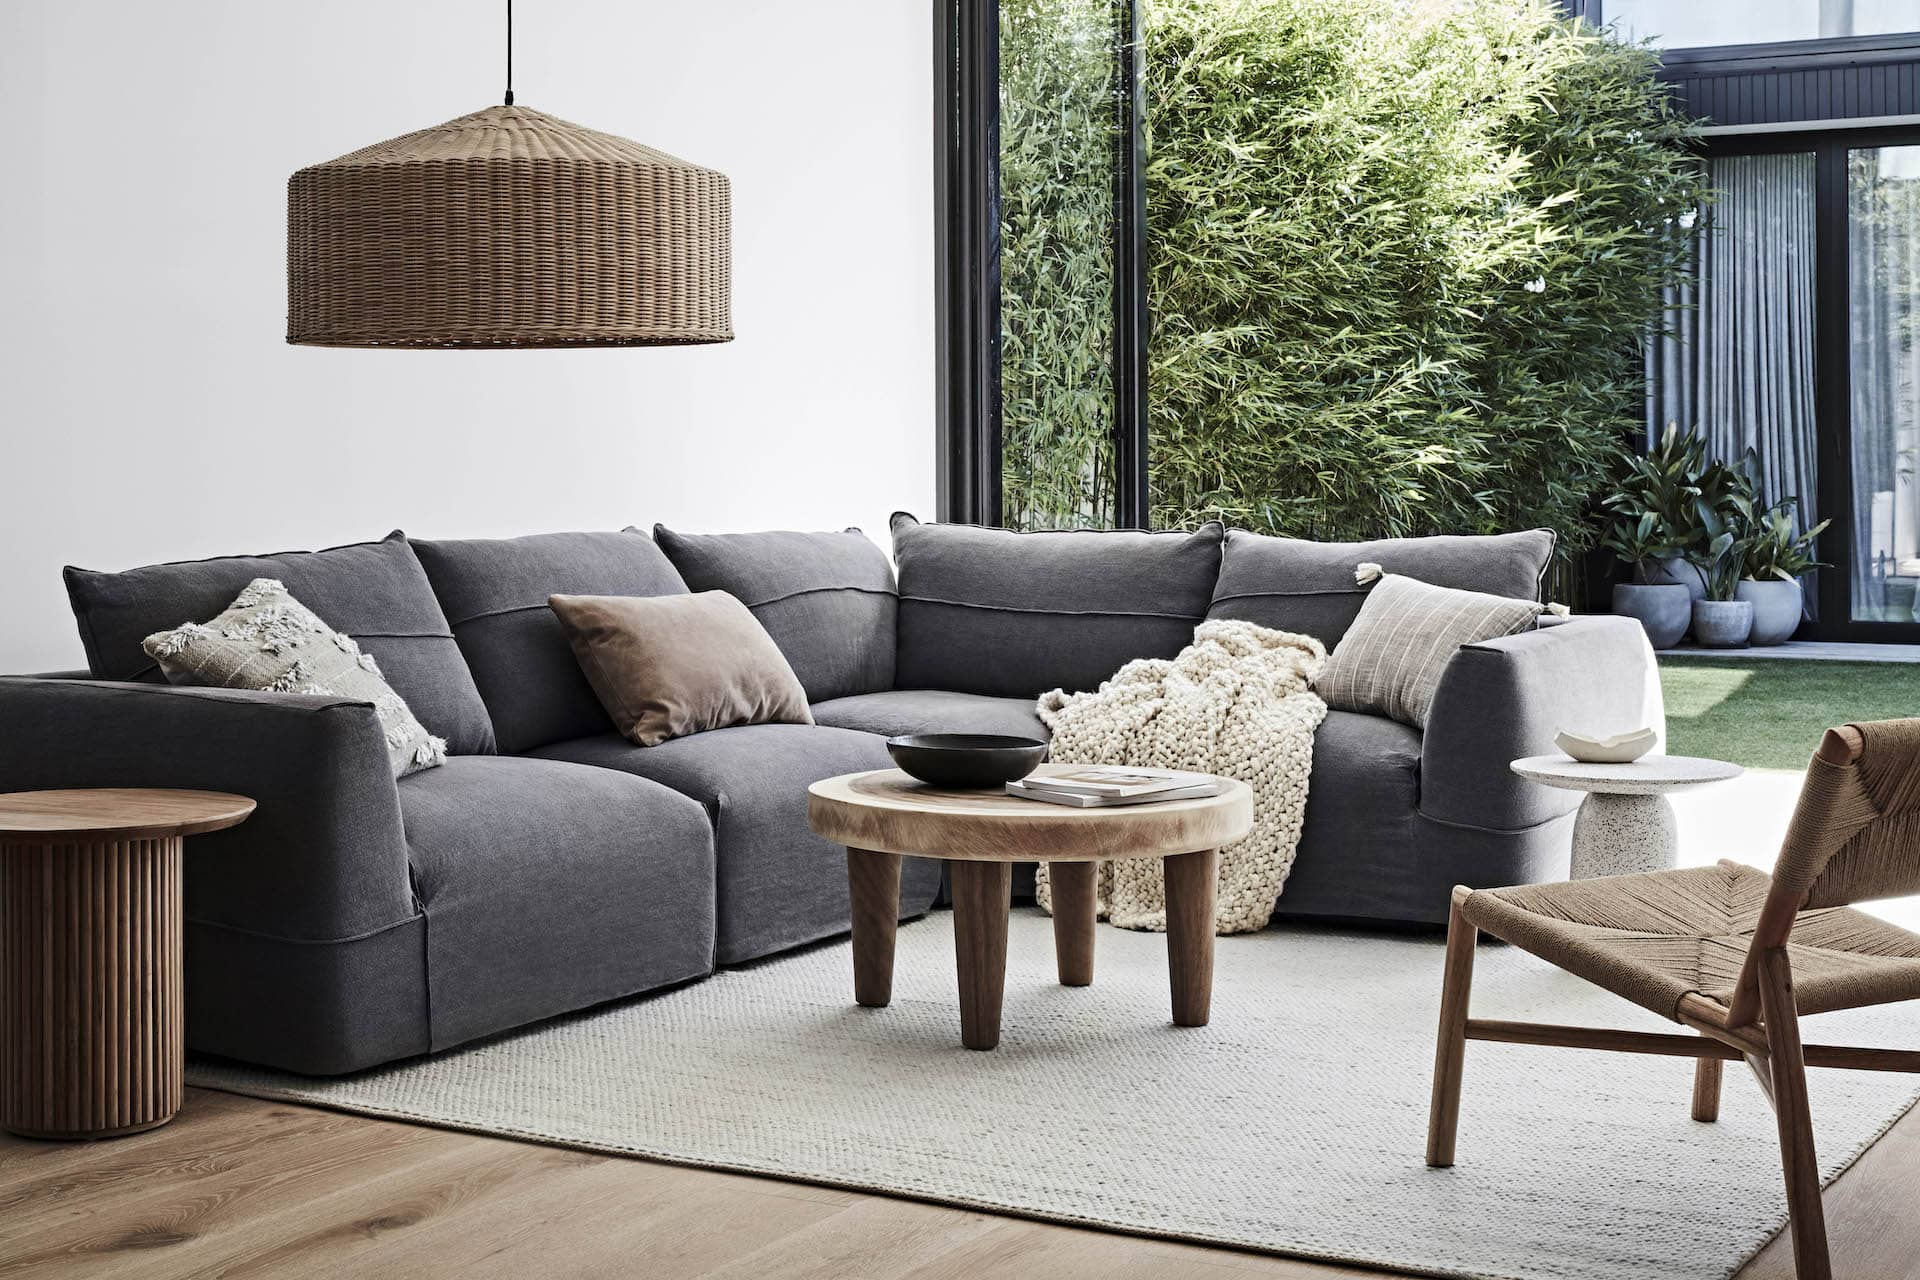 globewest dark charcoal sofa in neutral living room with beige rug and timber tables